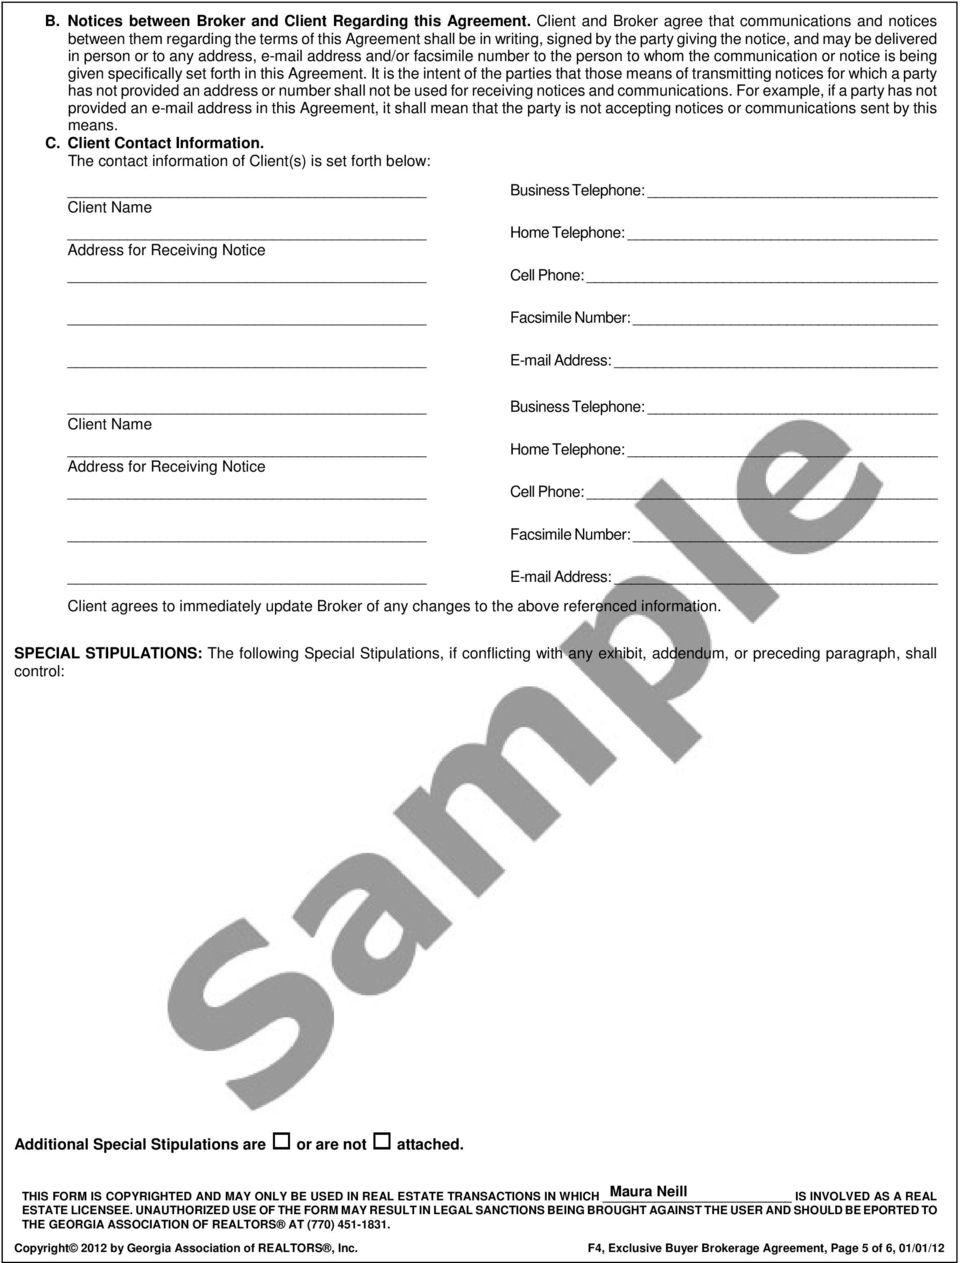 or to any address, e-mail address and/or facsimile number to the person to whom the communication or notice is being given specifically set forth in this Agreement.